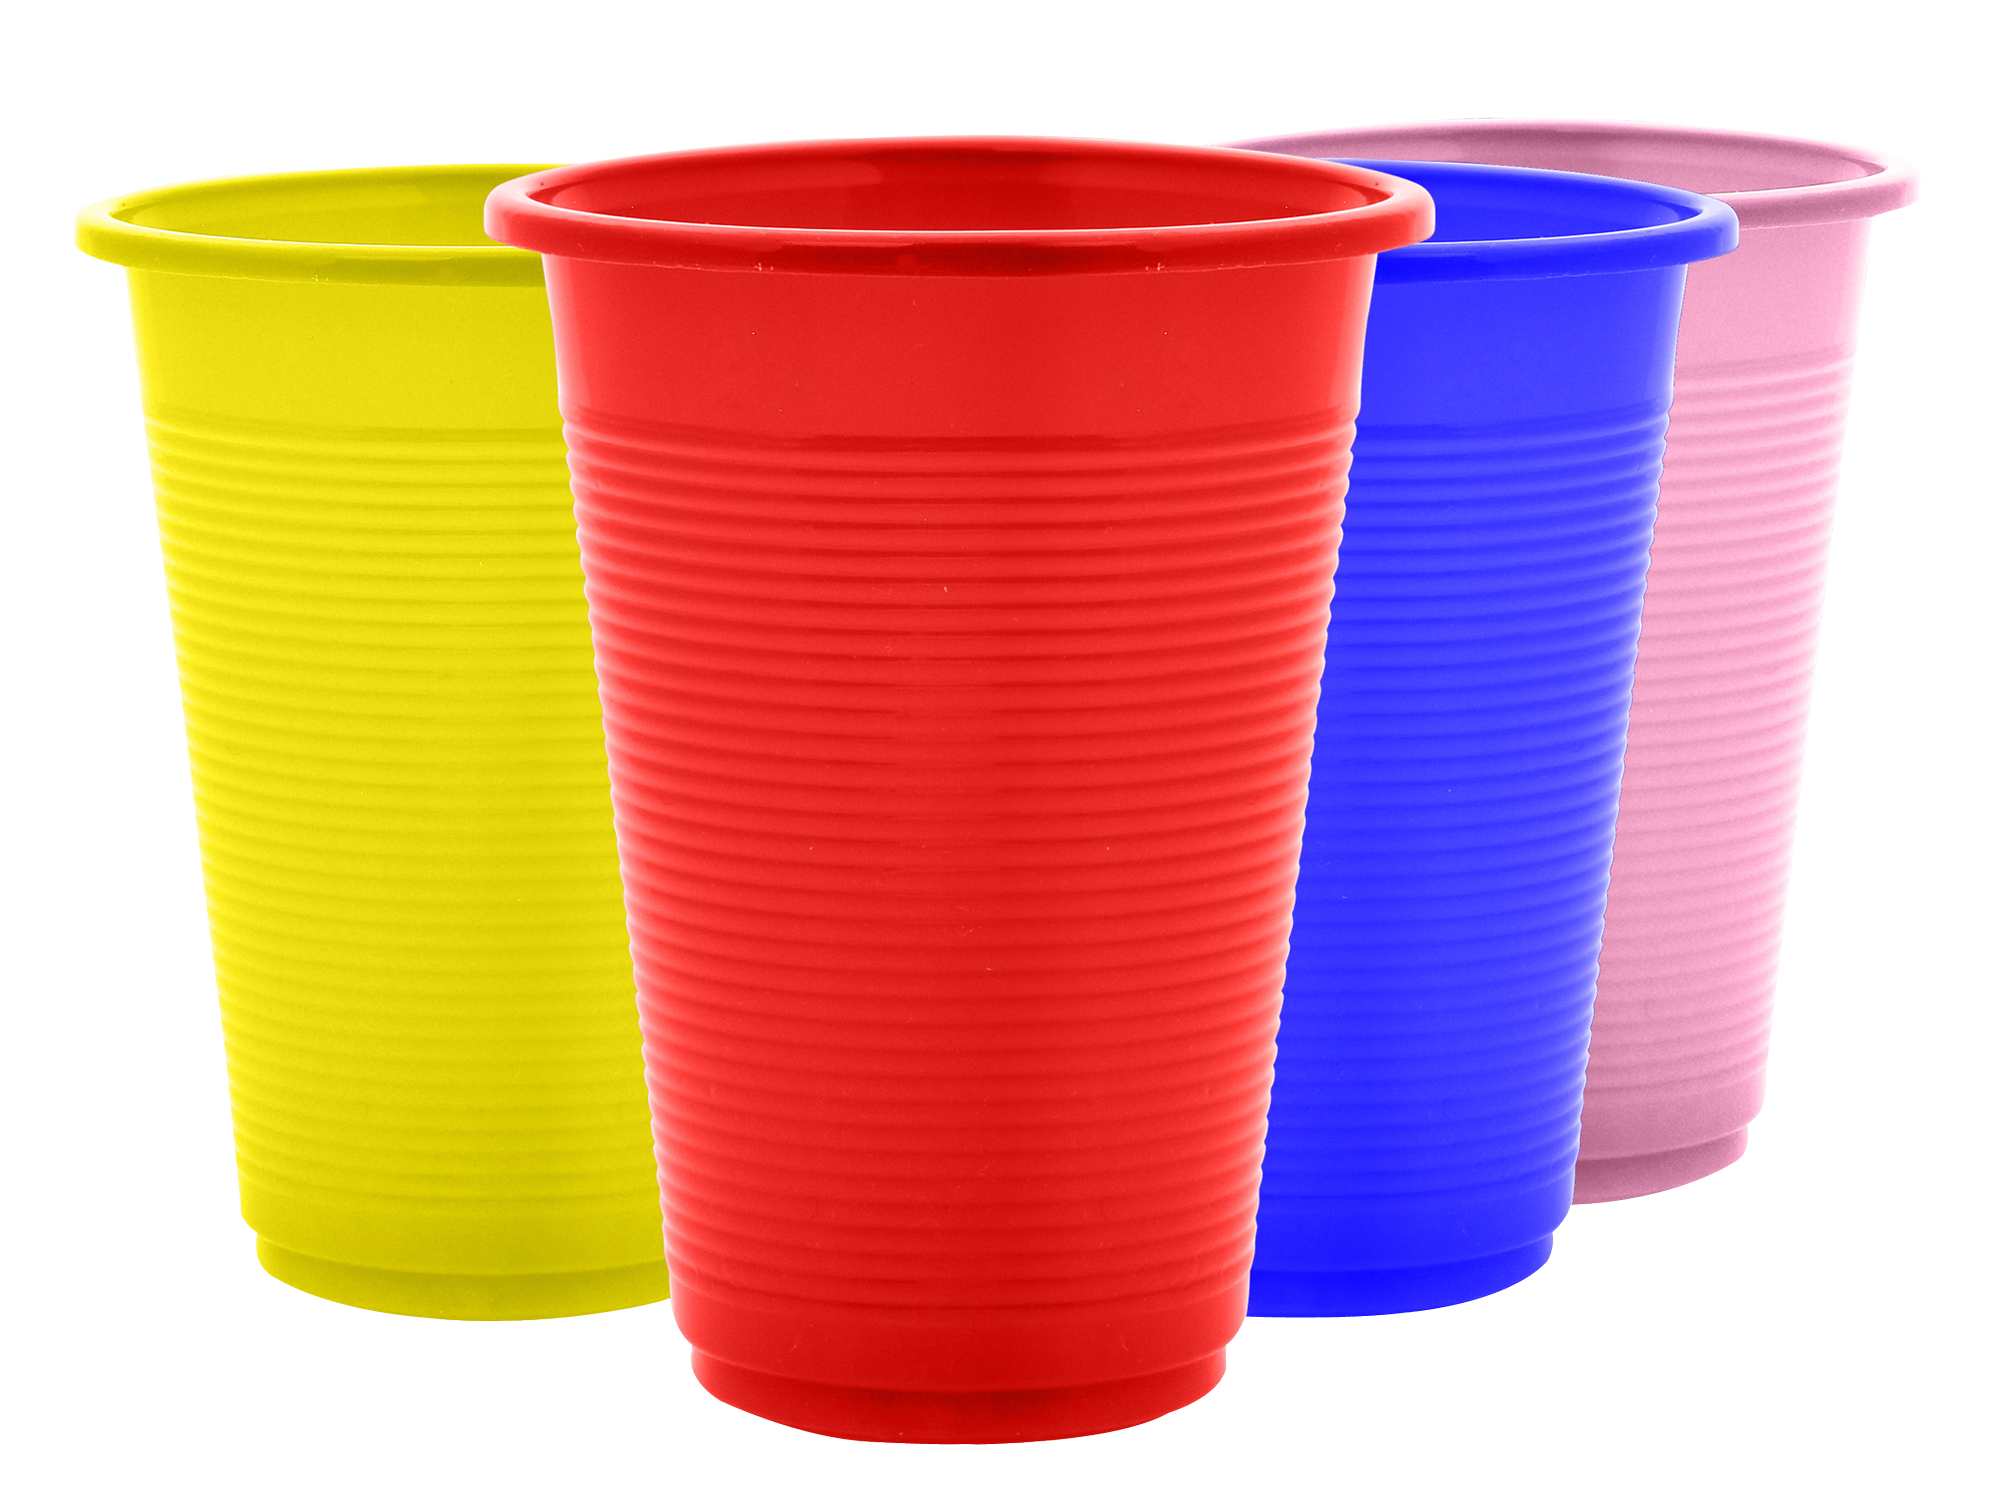 Plastic cup png. Cups image purepng free